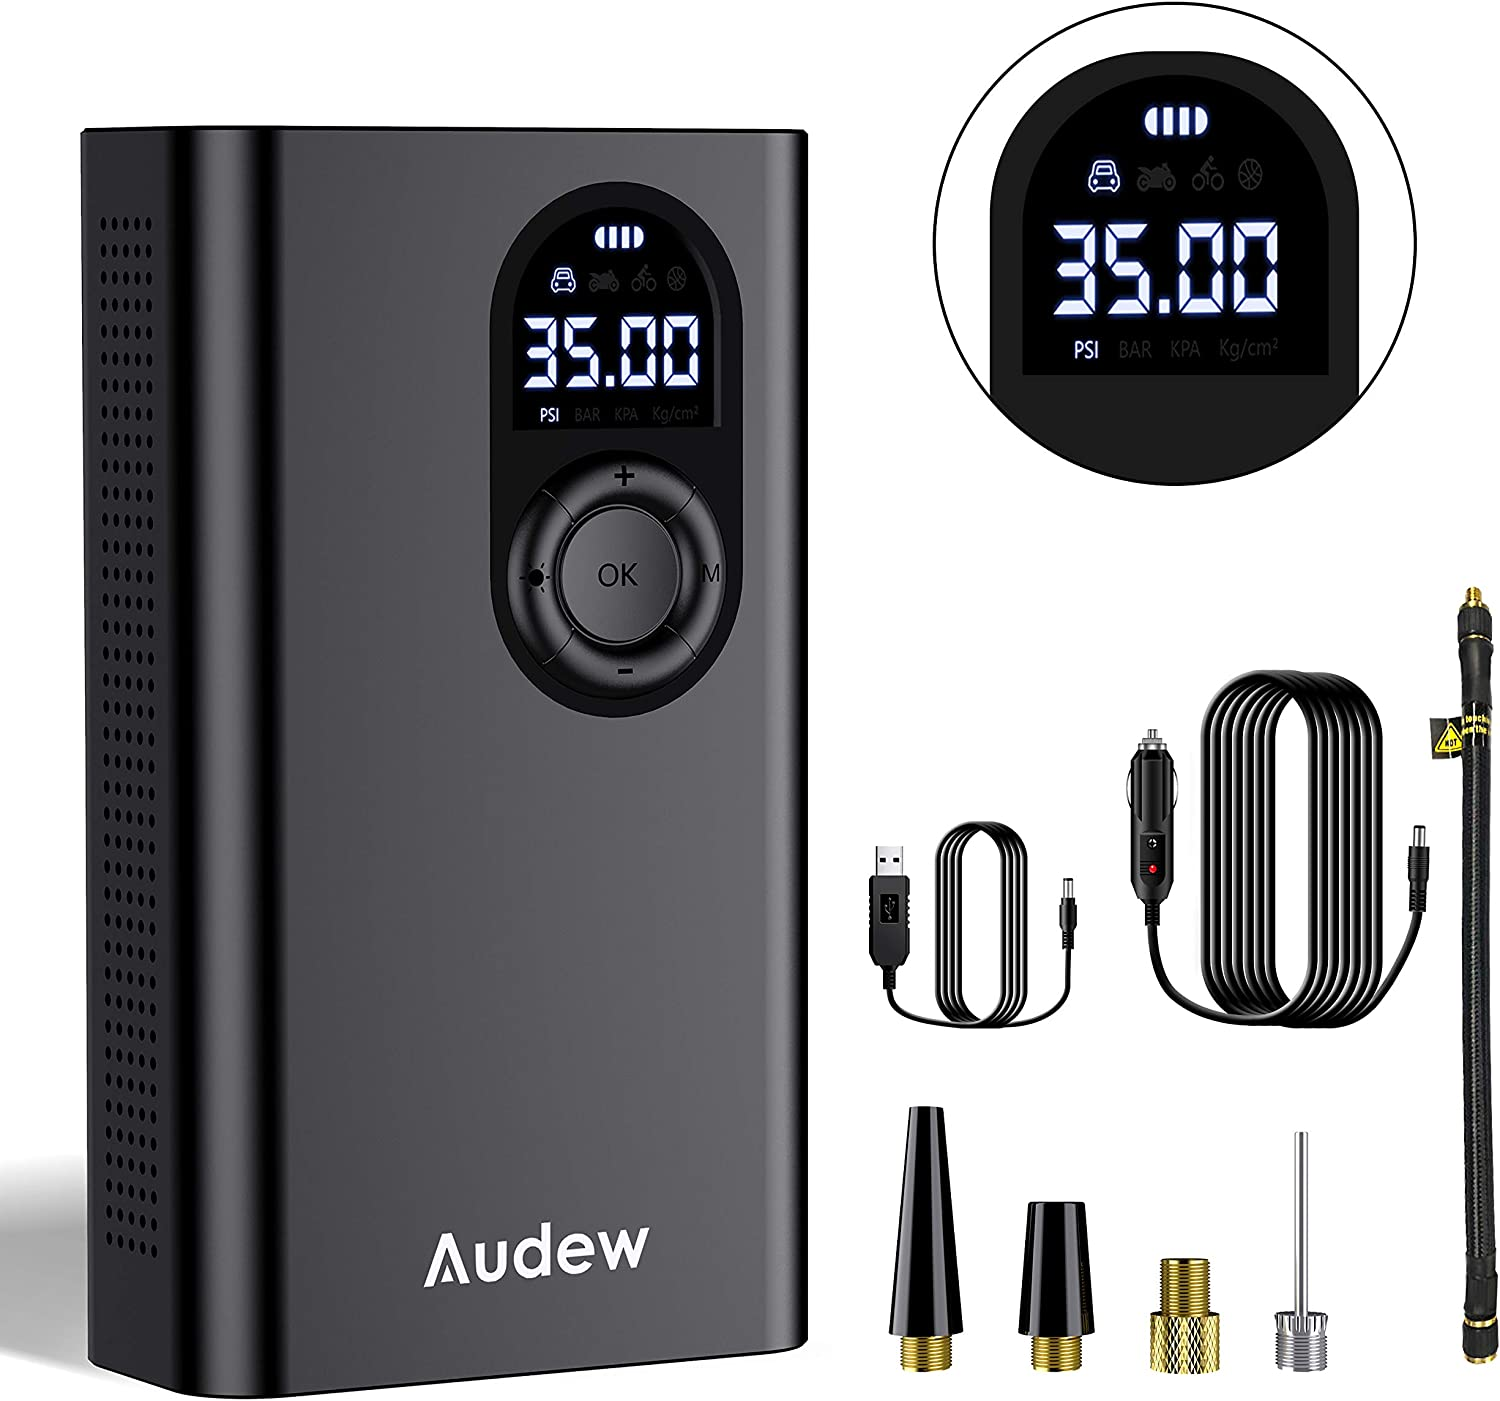 Audew Rechargeable Cordless Tire Inflator - Portable Air Pump with Digital Pressure Gauge 2000mAh Battery 150PSI LED Light 12V AC DC, Auto Shut Off for Cars, Motorcycles, Balls,and Other inflator